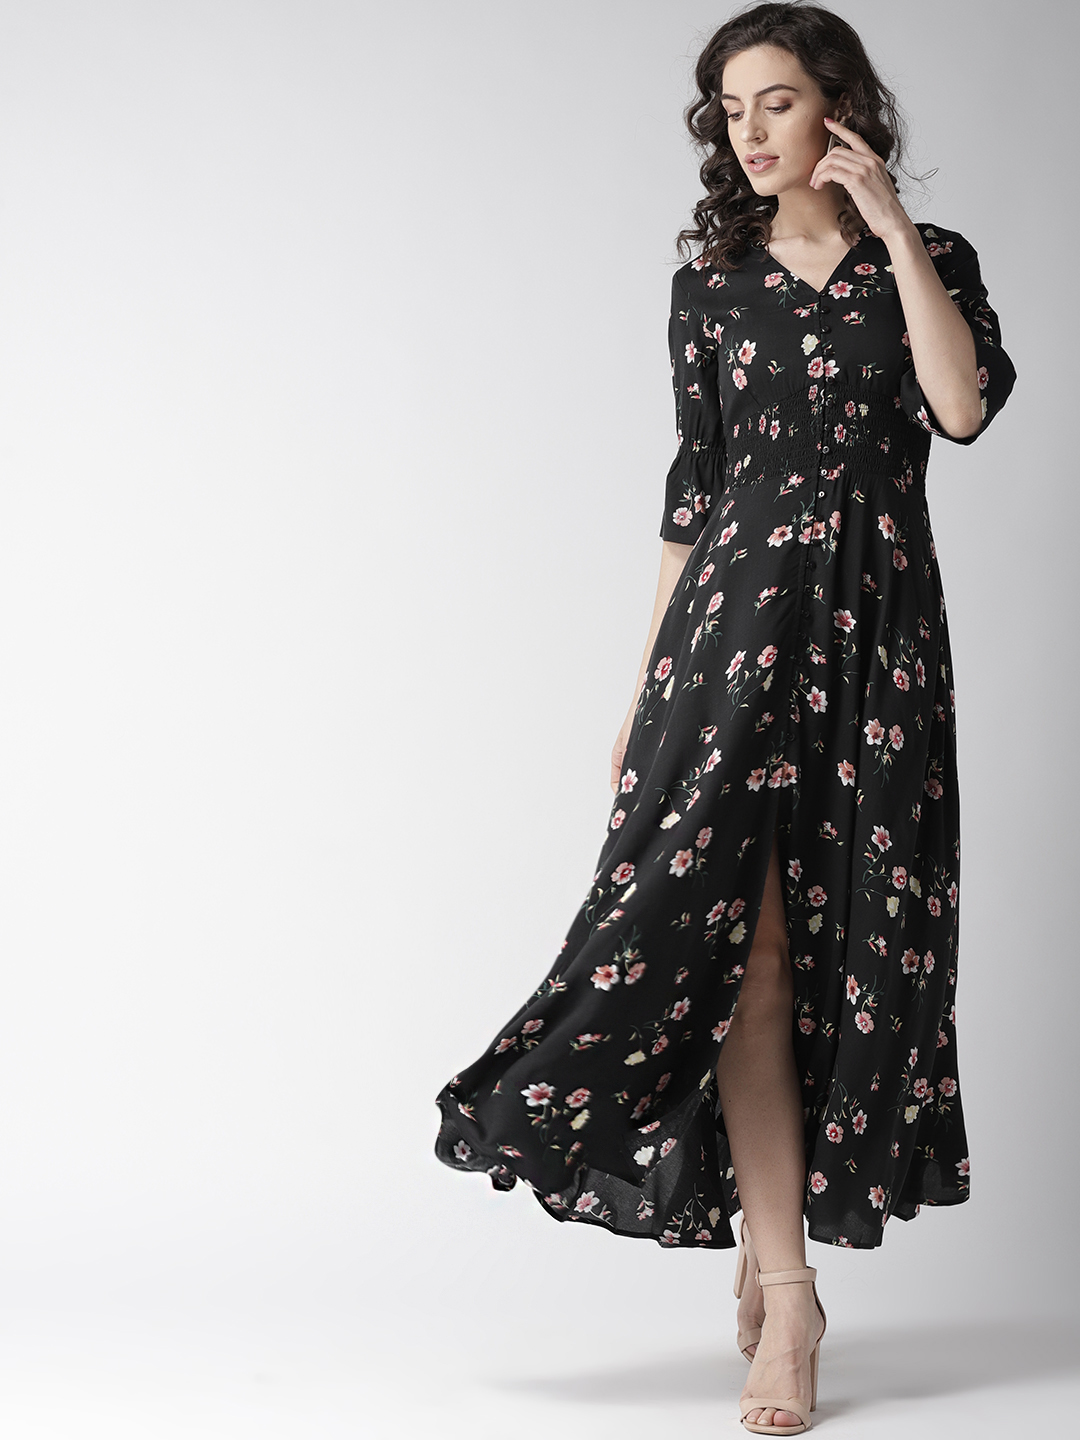 Dresses-Spot On Style Floral Maxi Dress1